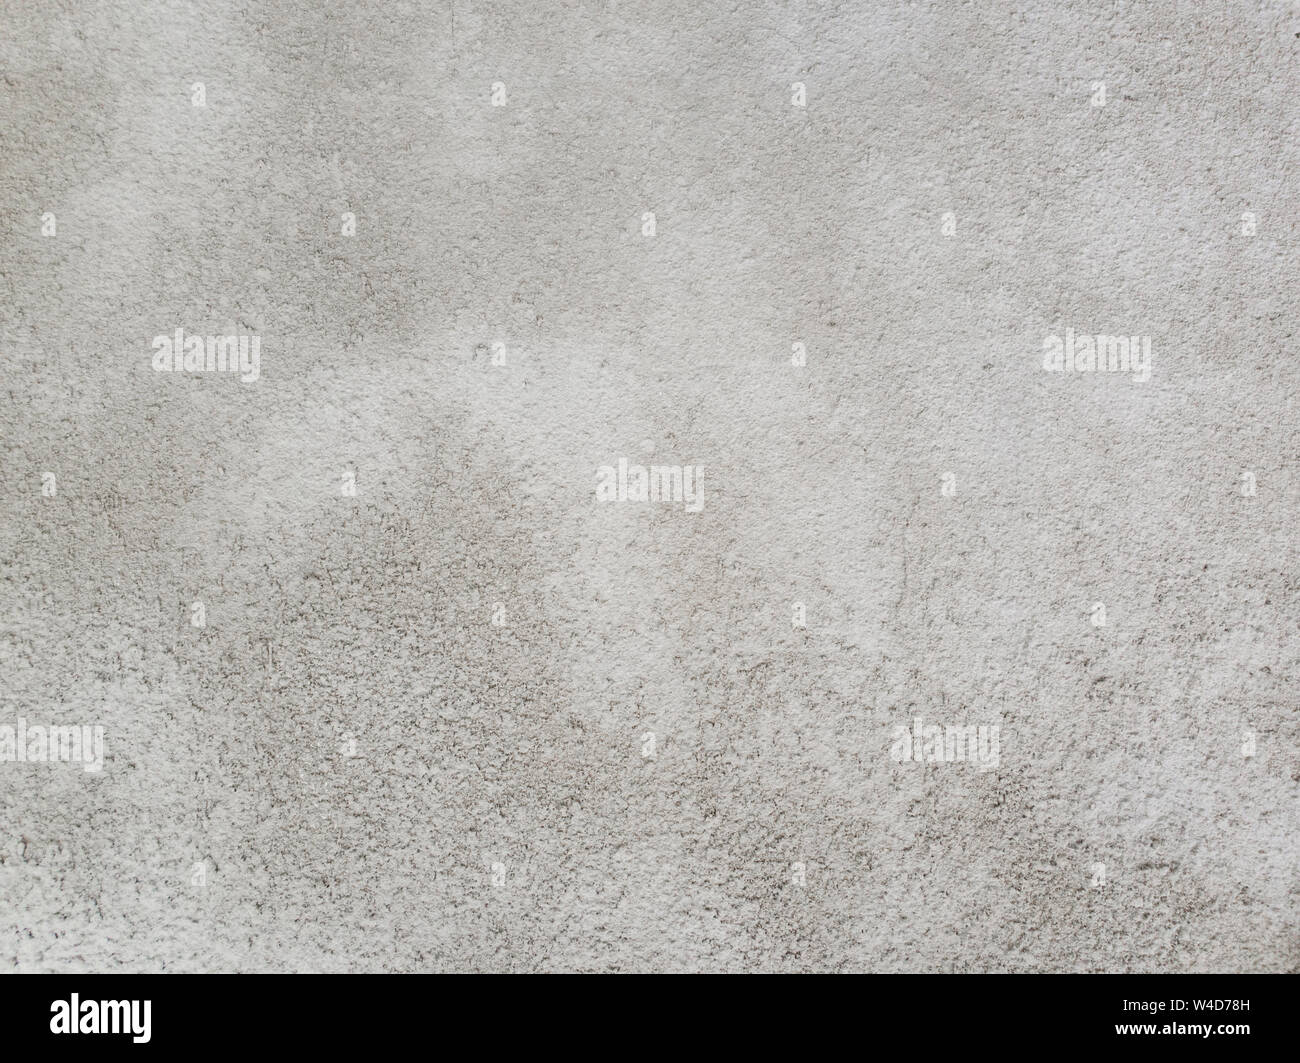 Beton Wall Beton Wall Texture Stock Photos Beton Wall Texture Stock